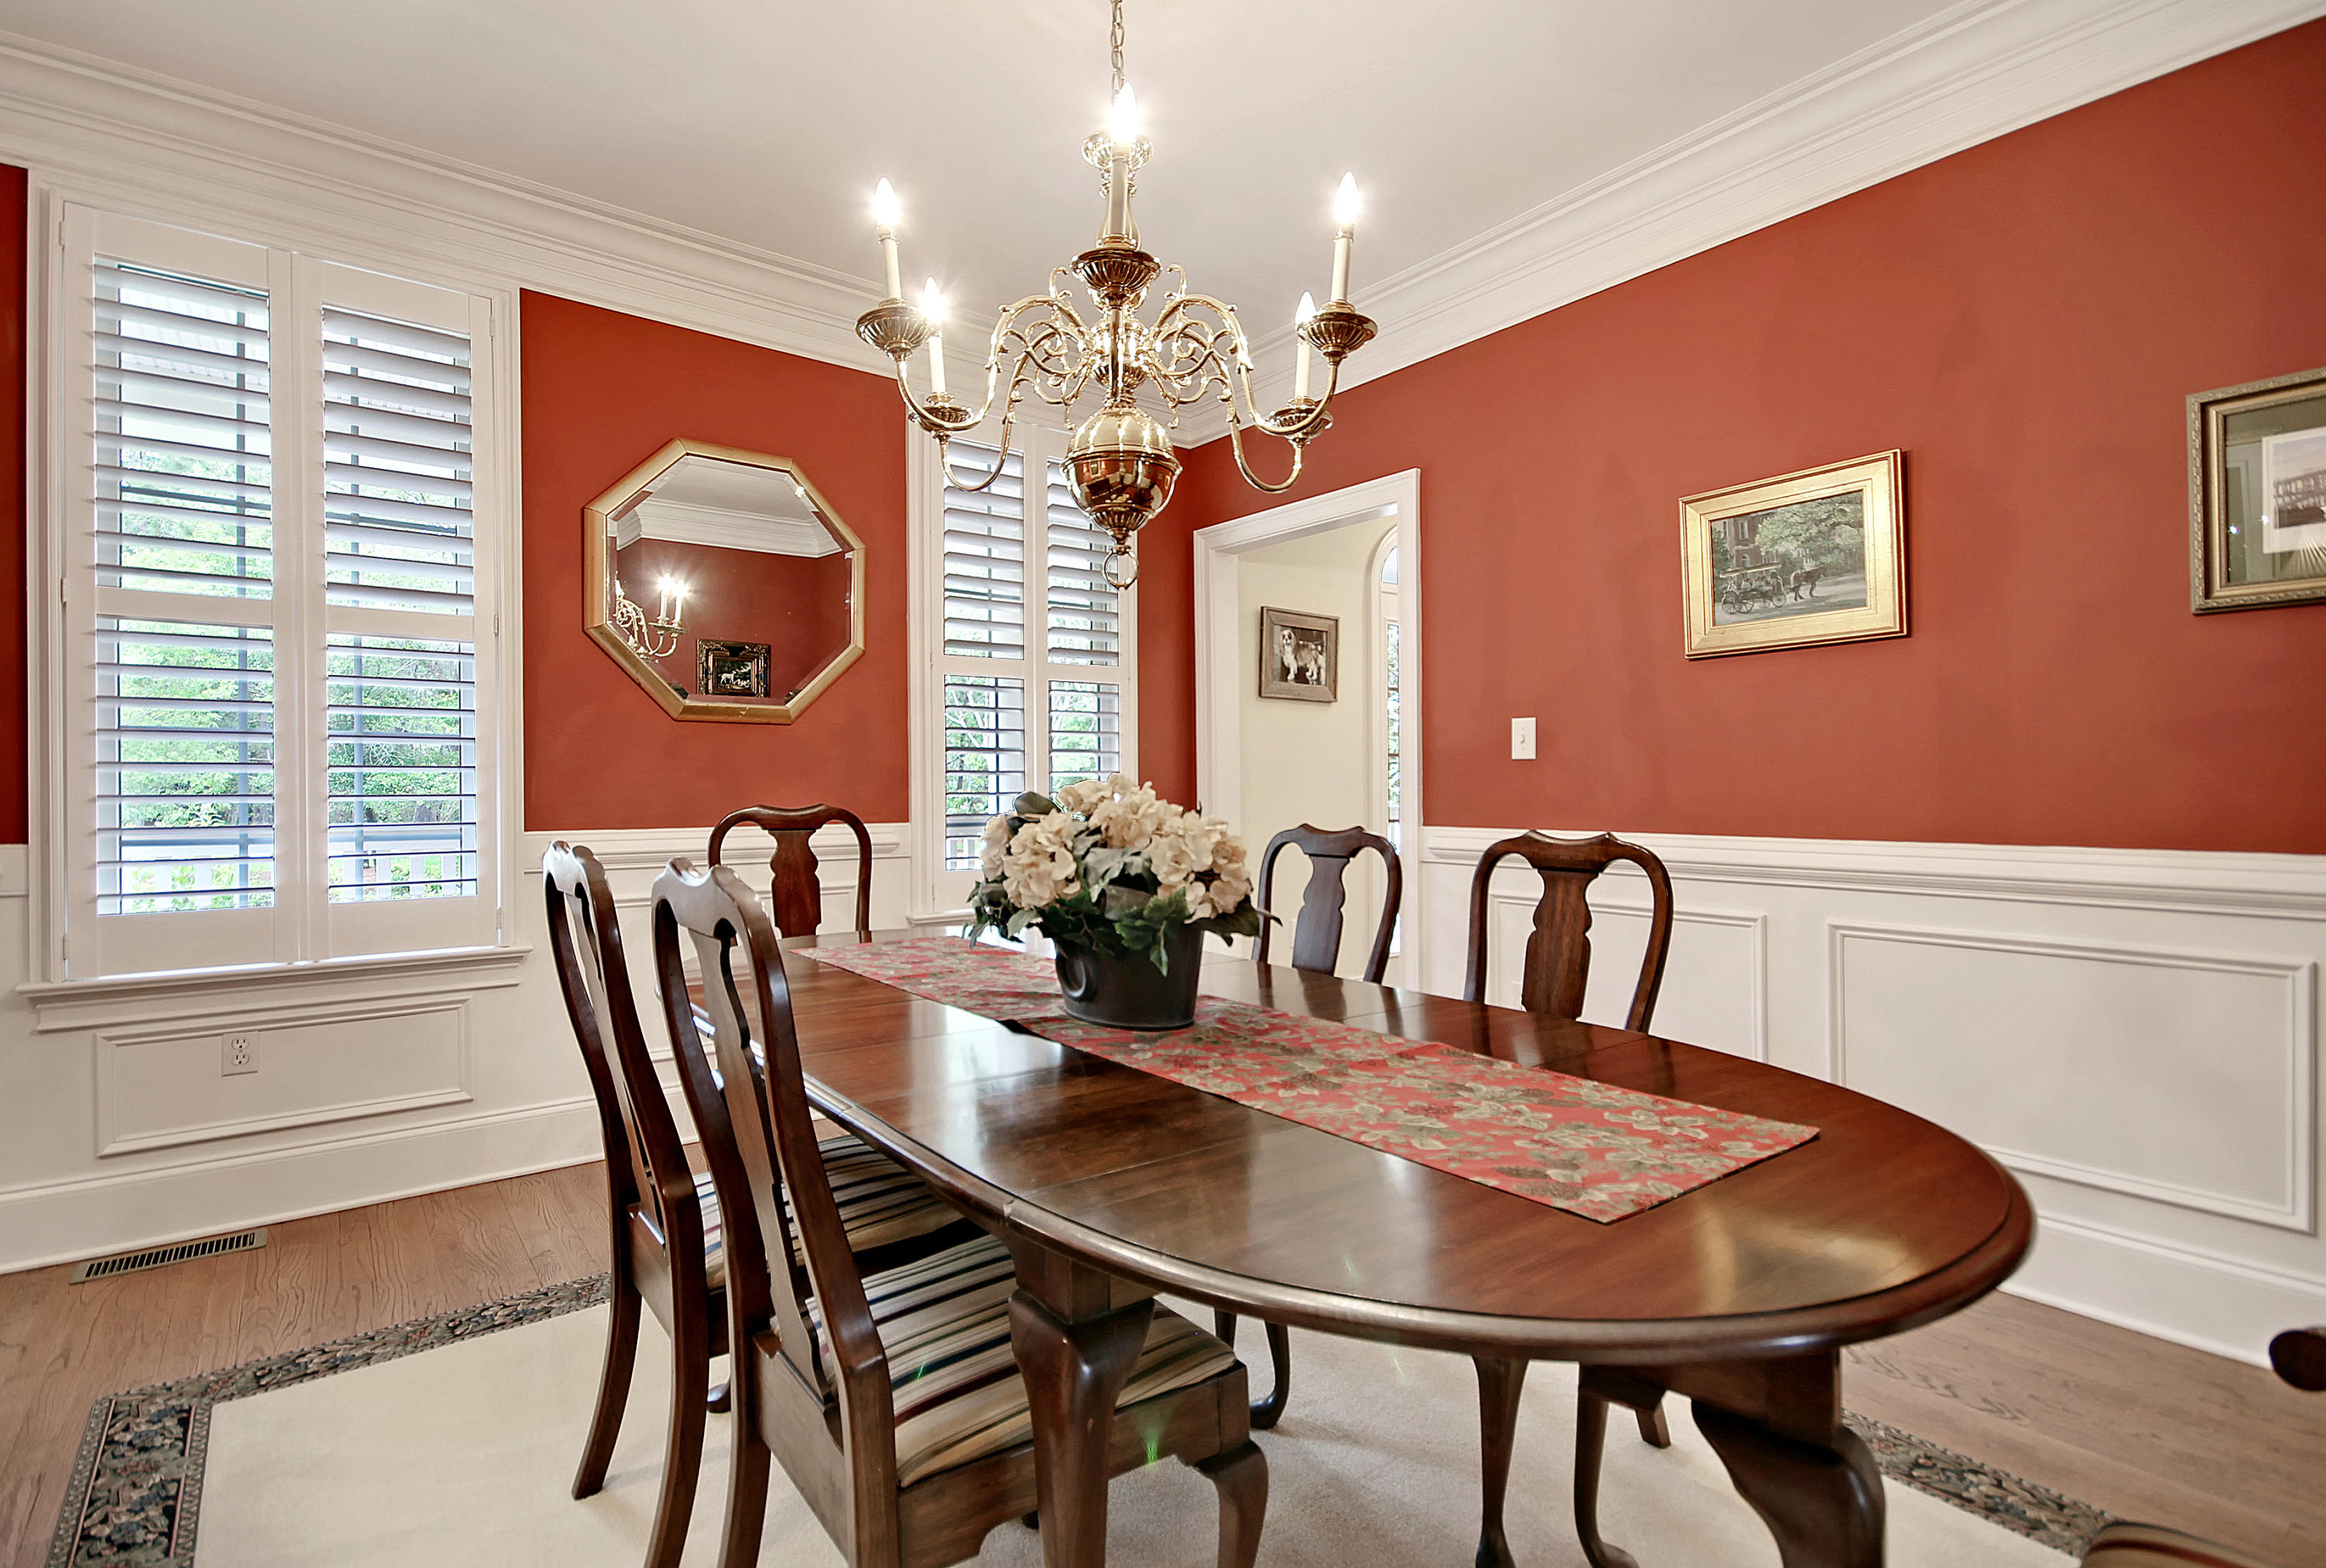 Dunes West Homes For Sale - 1829 Shell Ring, Mount Pleasant, SC - 3